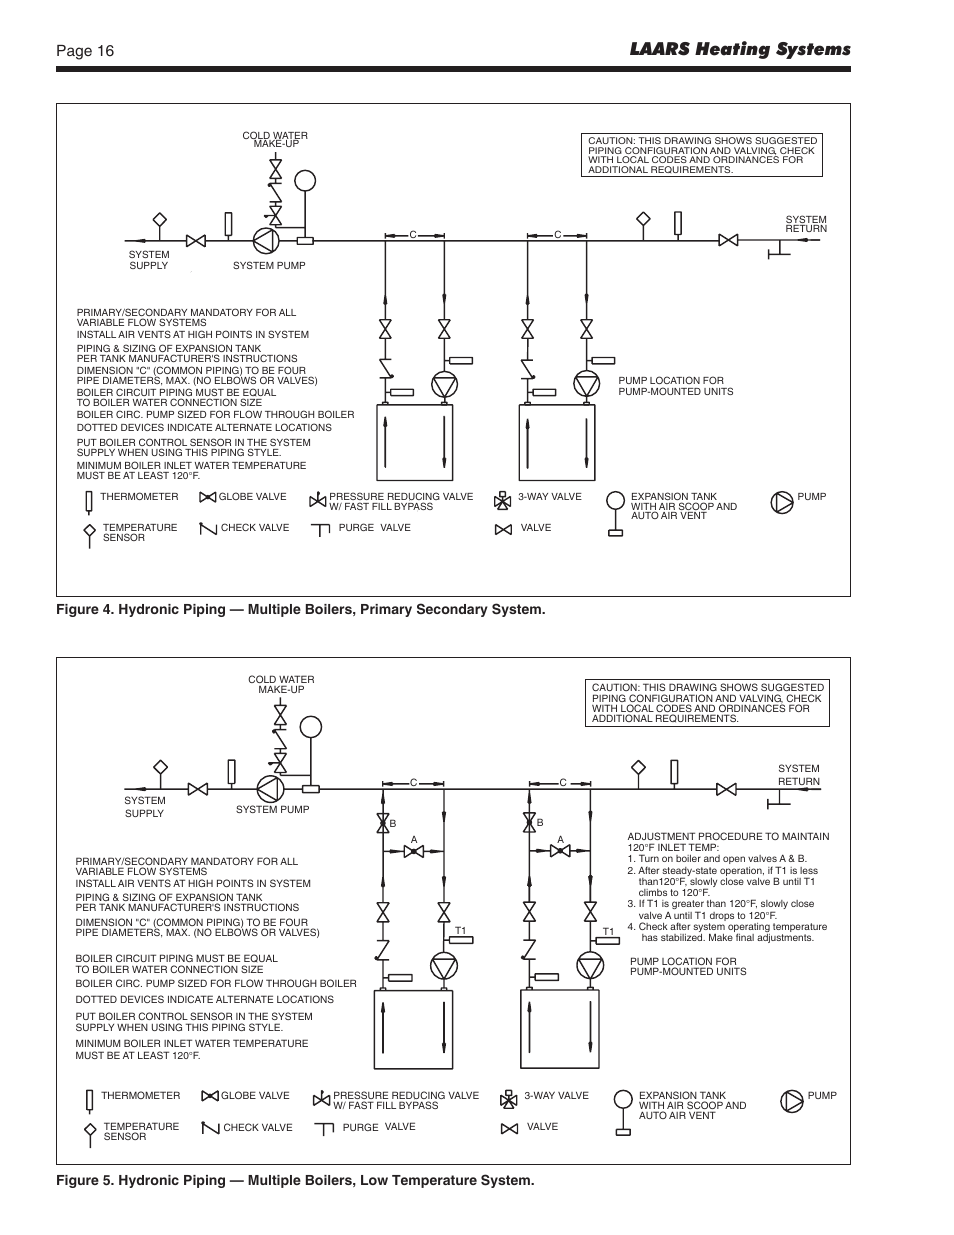 hight resolution of laars heating systems laars pennant pncv sizes 200 300 400 install and operating manual user manual page 17 45